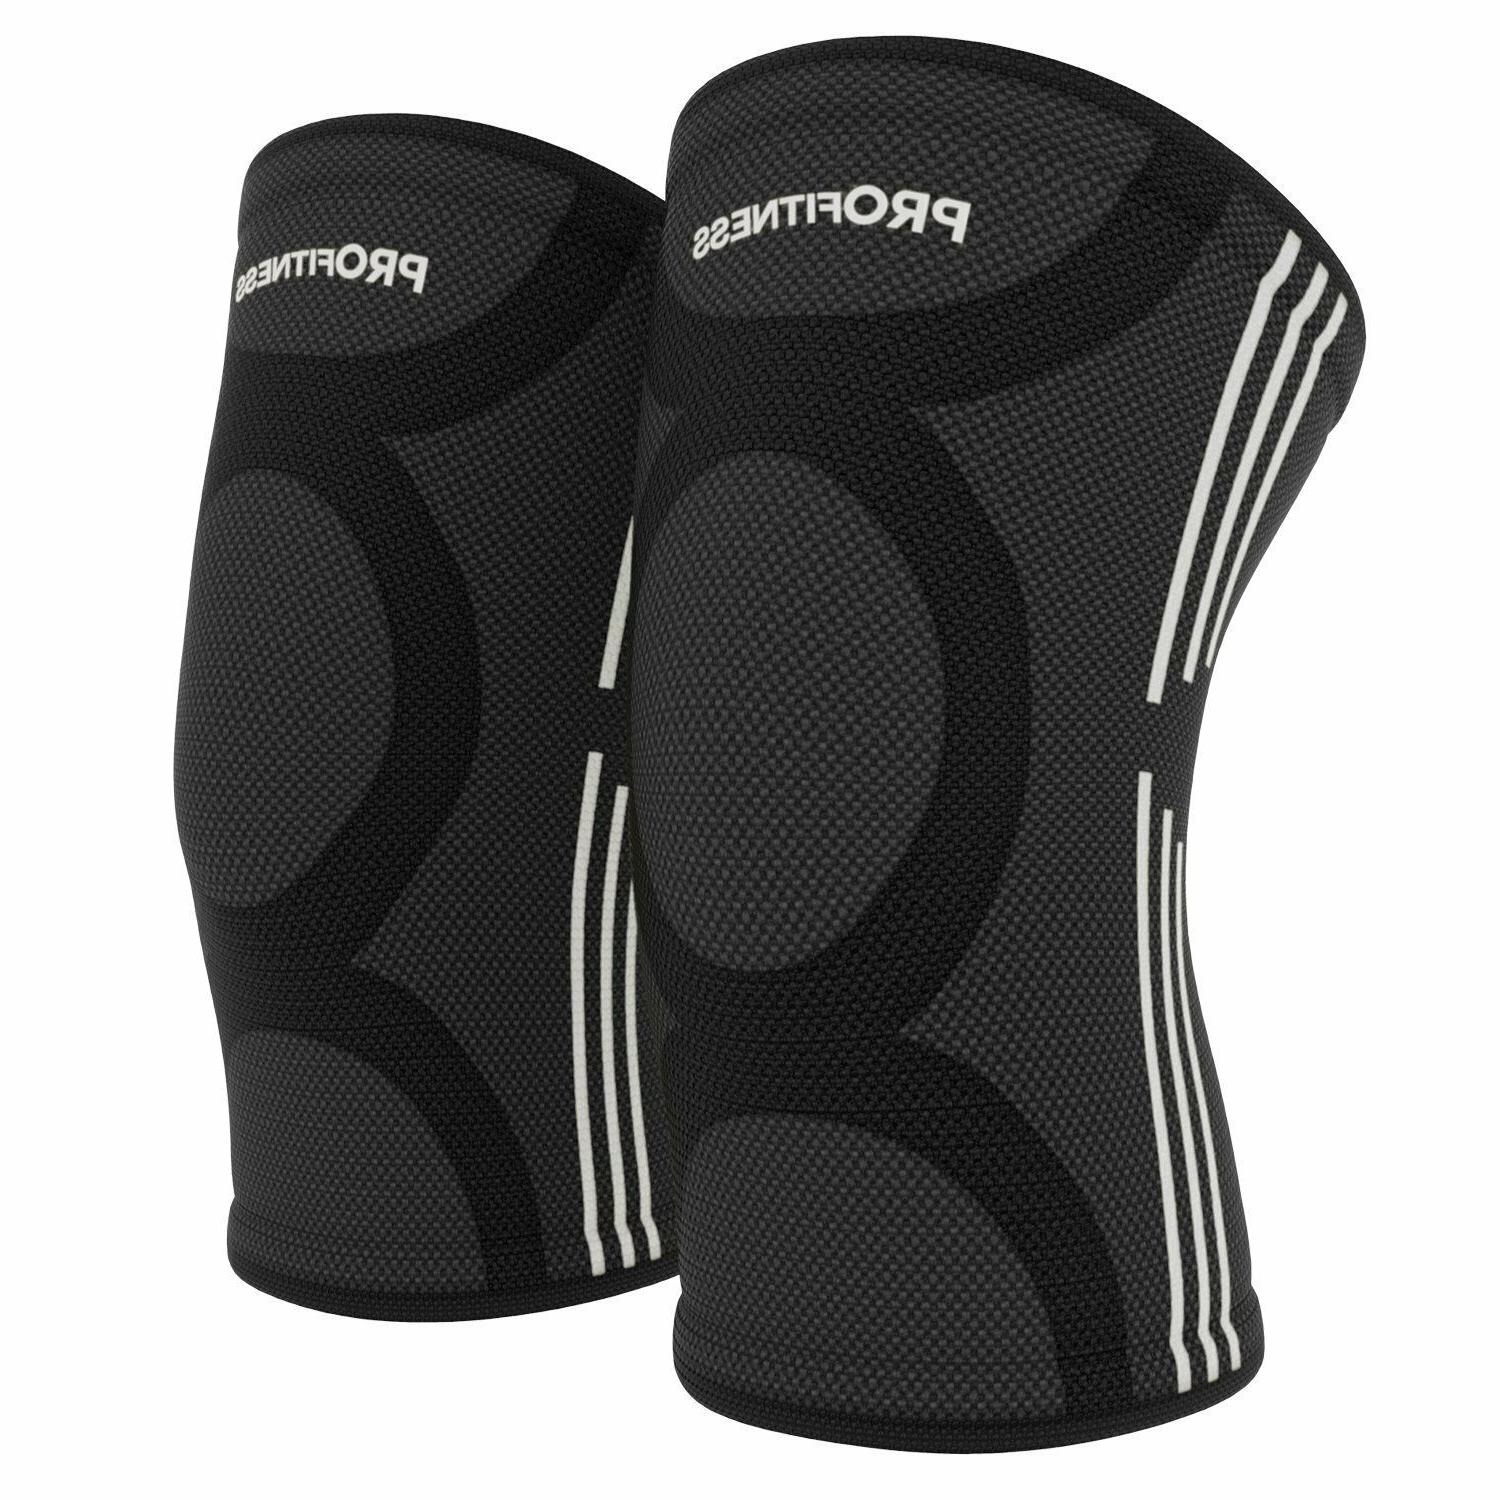 knee sleeves knee support for joint pain